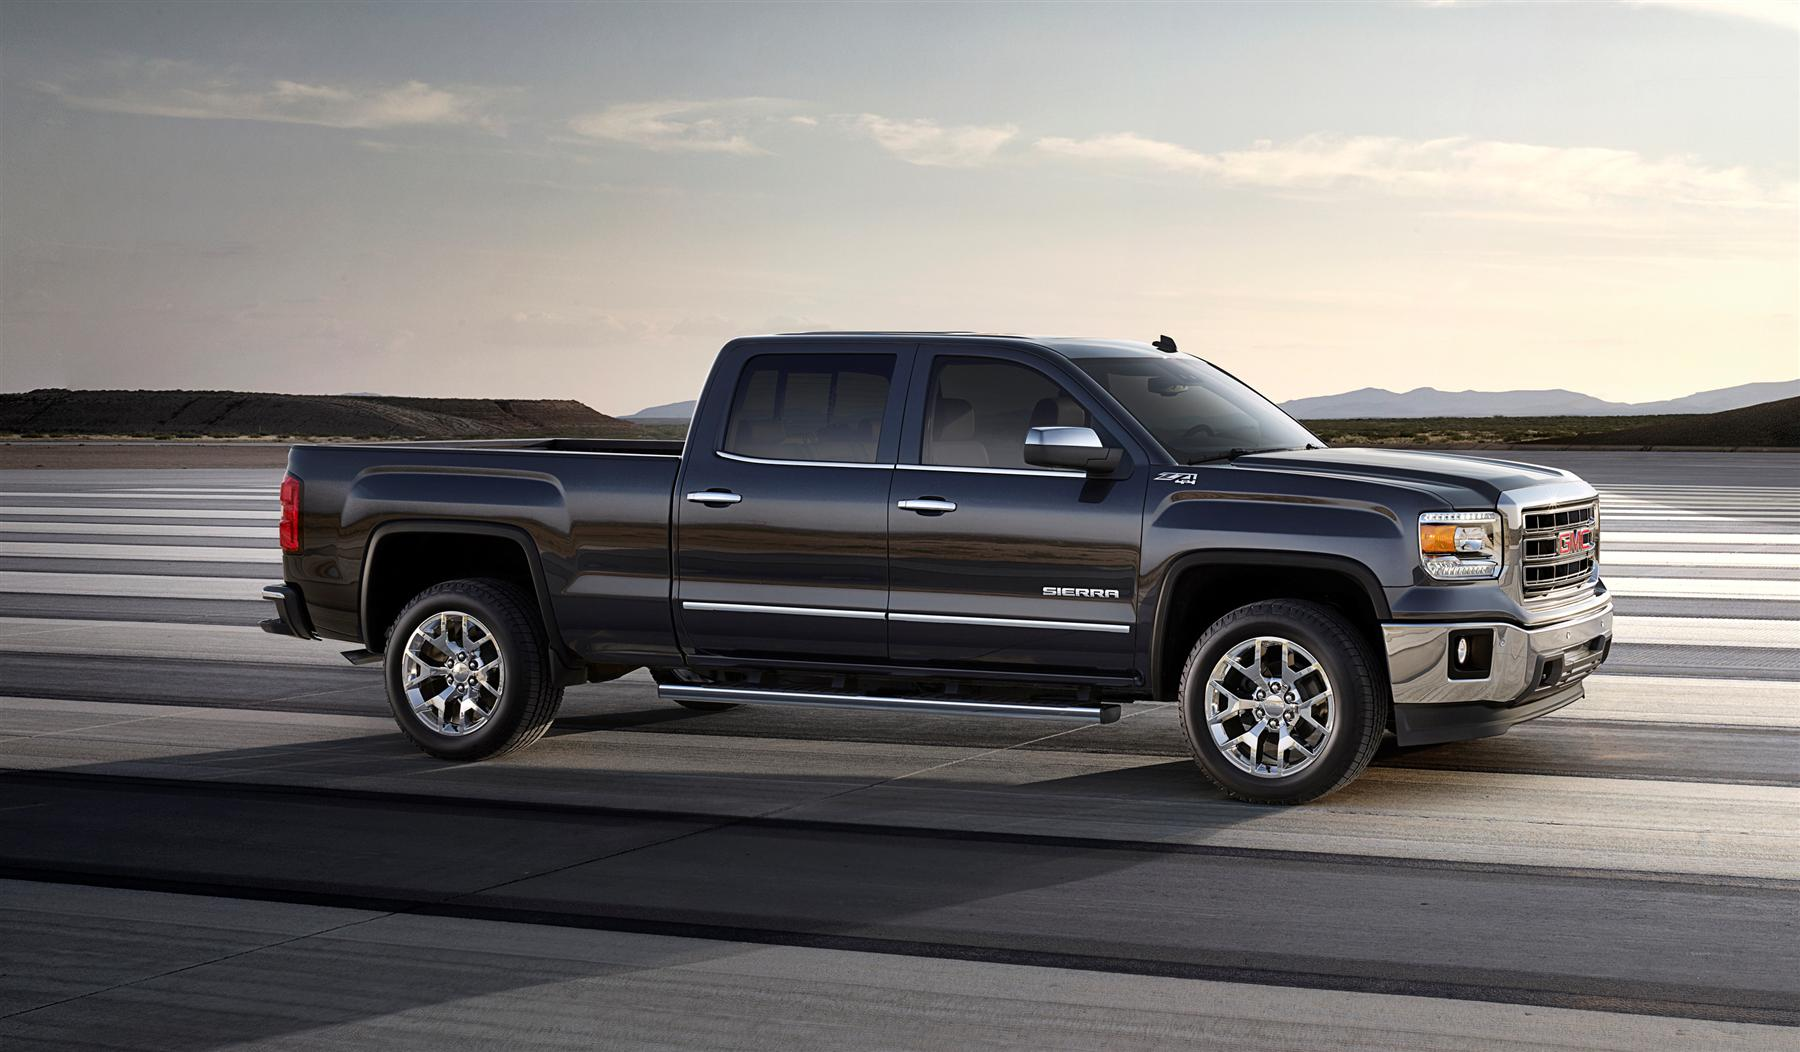 Manufacturer photo: New from hood to hitch, the 2014 Silverado is engineered to be the strongest, smartest, and most capable Silverado ever